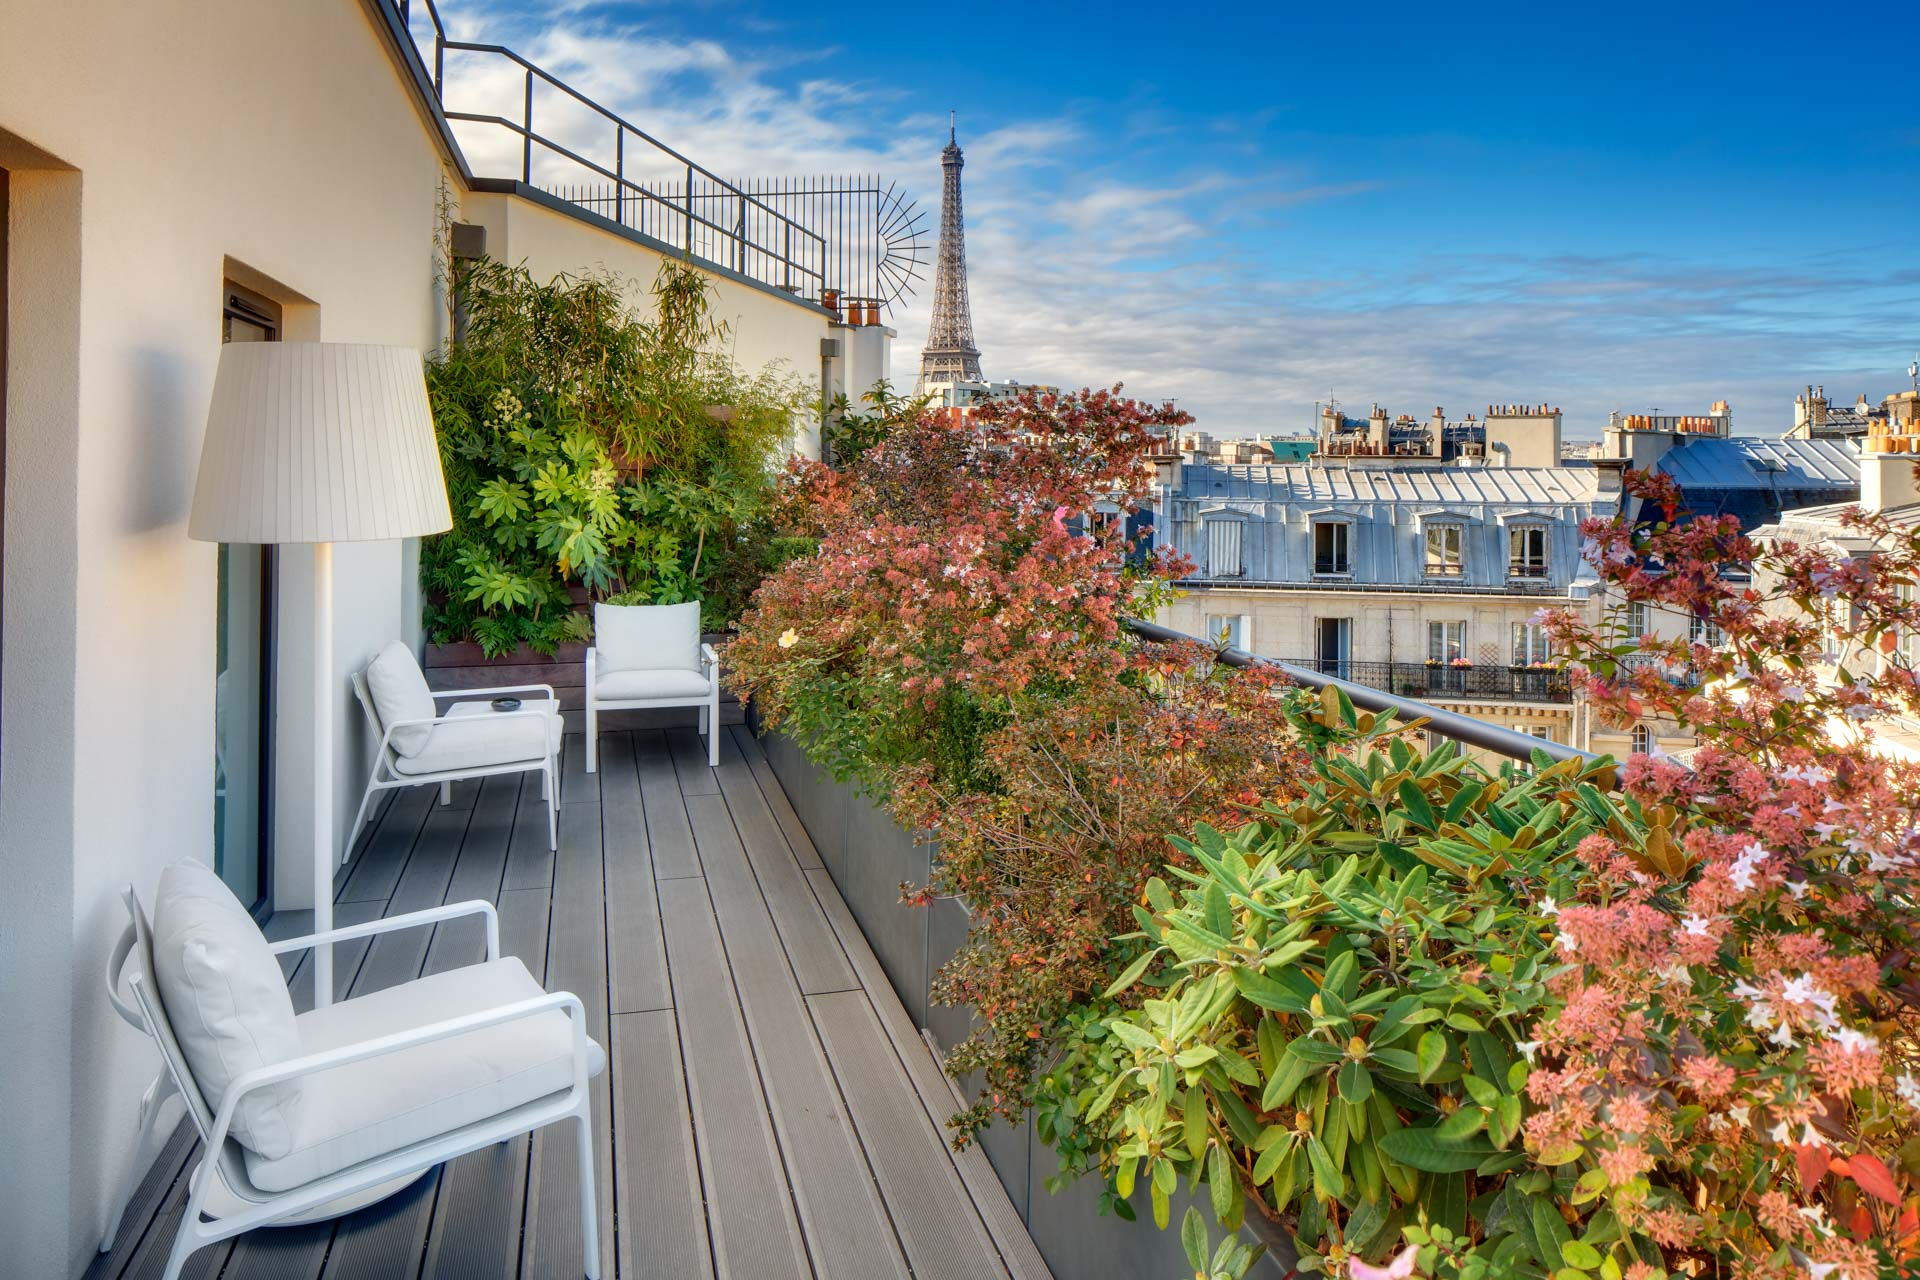 Terrace at the Hotel Le Cinque Codet Paris with the view on the Eiffel Tower